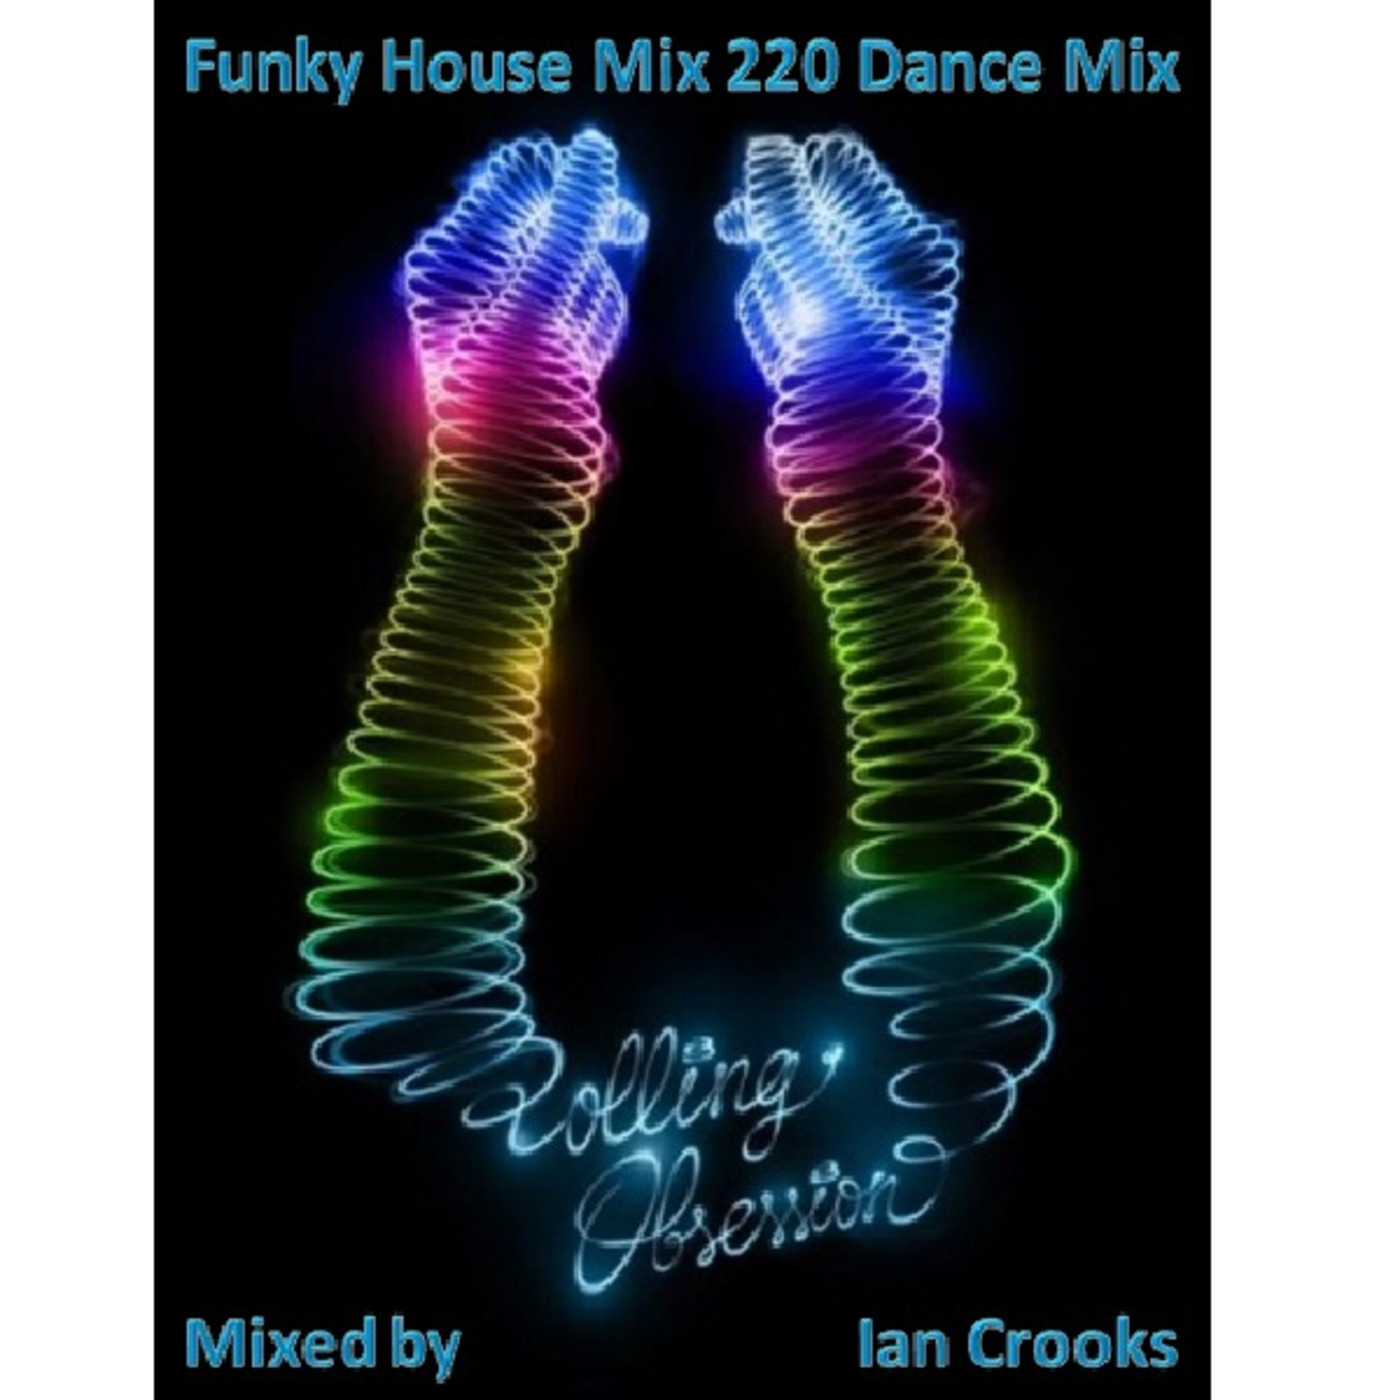 Funky house mix 220 dance mix funky house mixes podcast for Funky house music classics